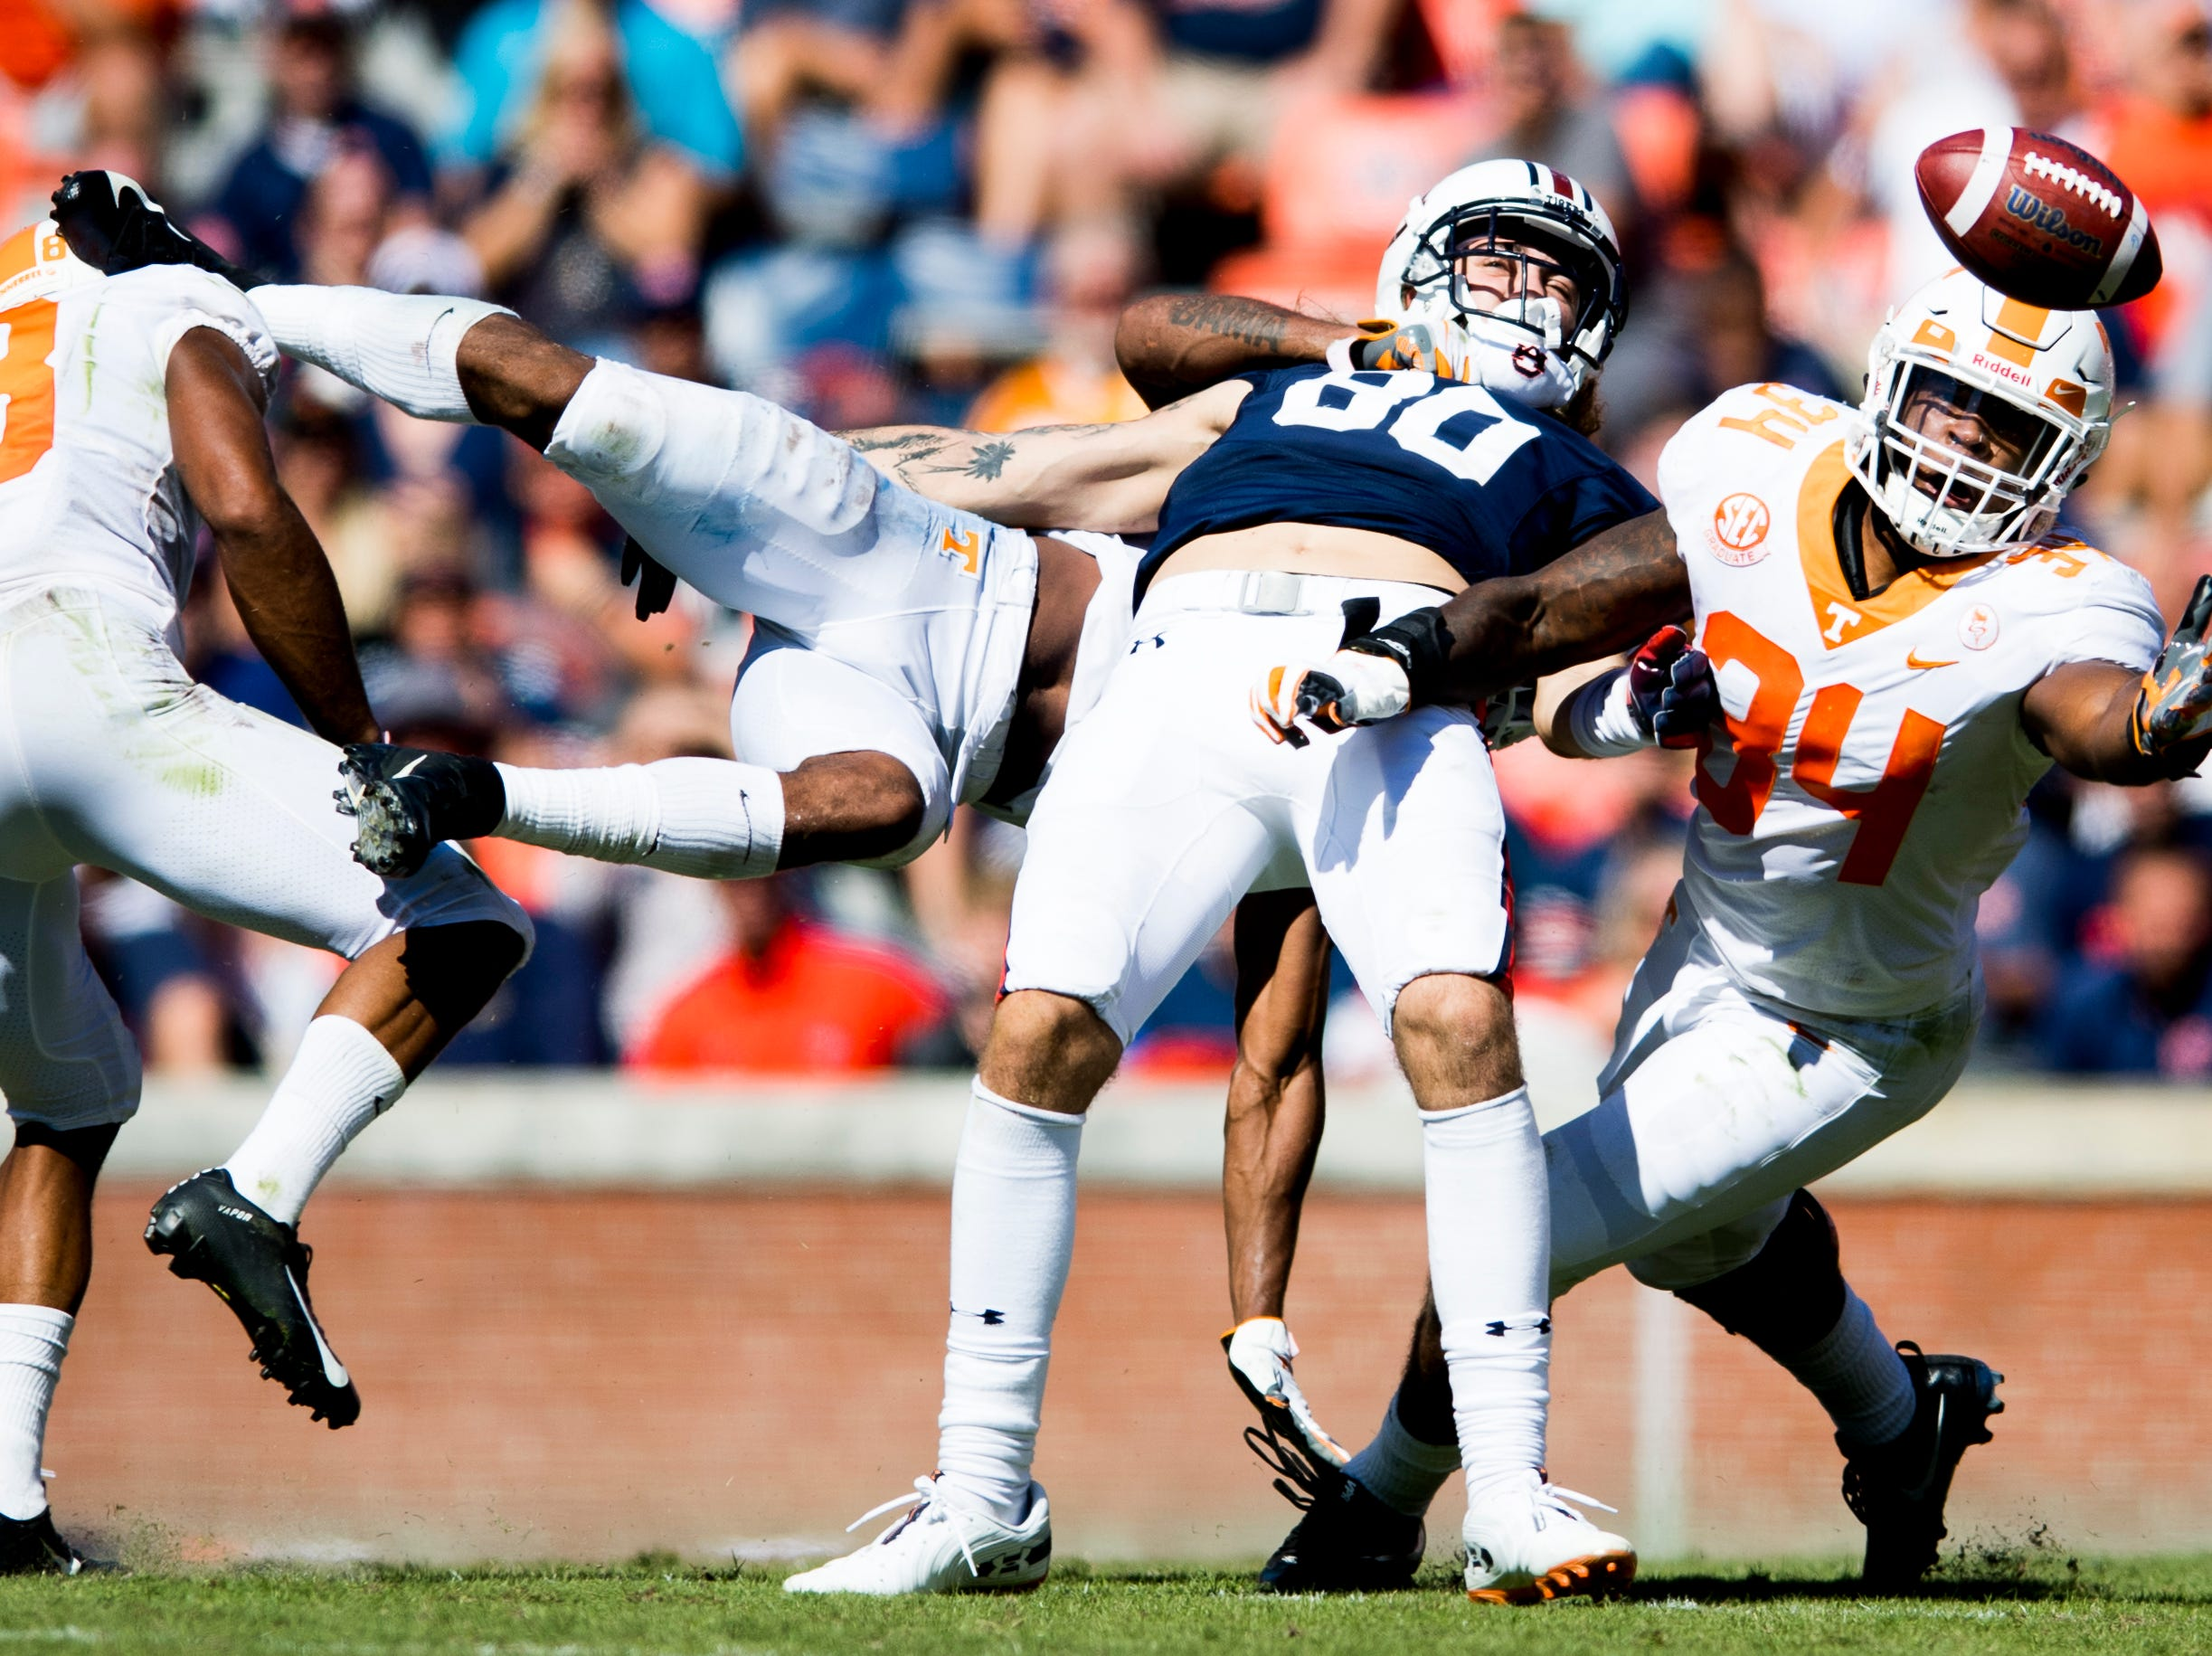 Auburn tight end Sal Cannella (80), Tennessee linebacker Darrin Kirkland Jr. (34) and Tennessee defensive back Shawn Shamburger (12), behind, go for a pass during a game between Tennessee and Auburn at Jordan-Hare Stadium in Auburn, Alabama on Saturday, October 13, 2018.